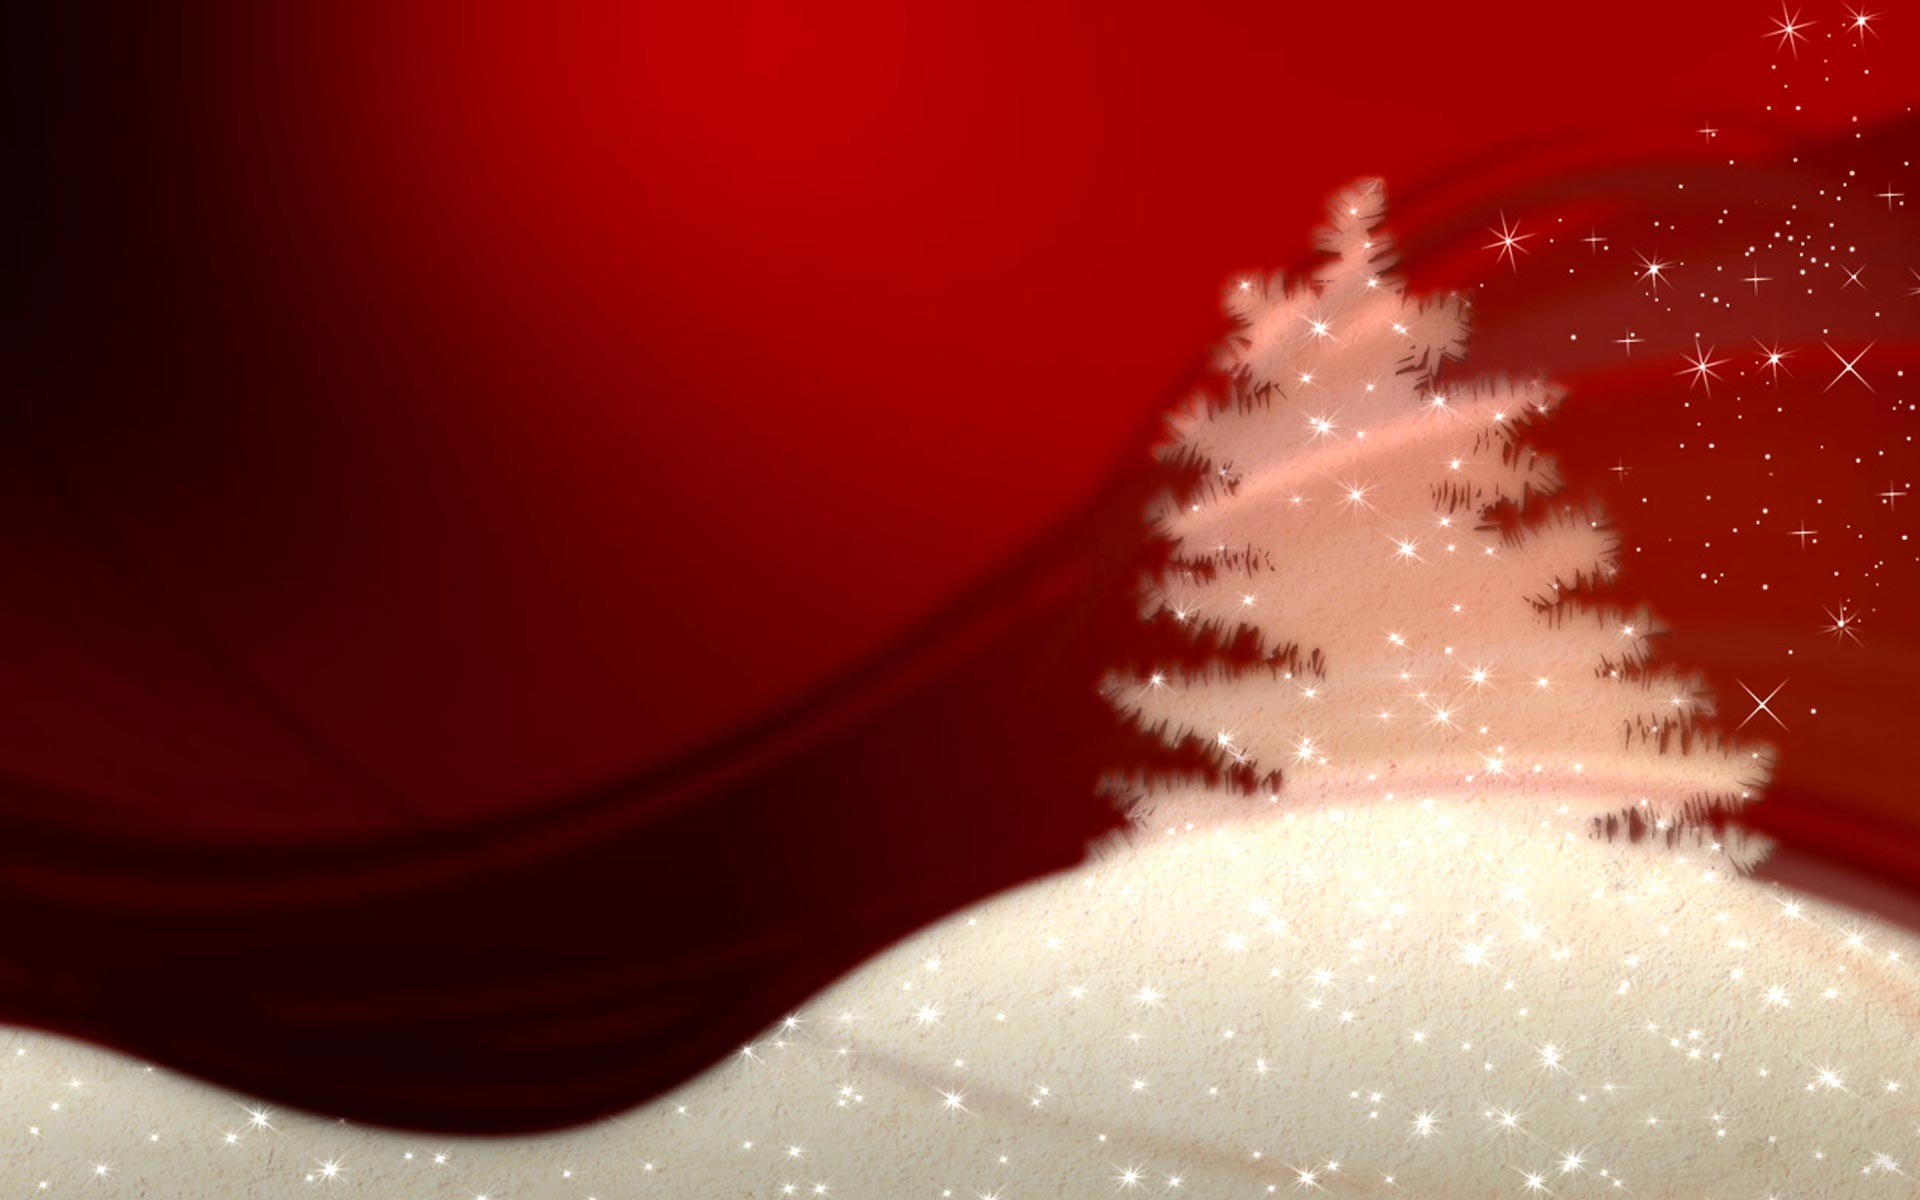 Christmas Tree Wallpaper Widescreen 8825 Hd Wallpapers in Celebrations 1920x1200